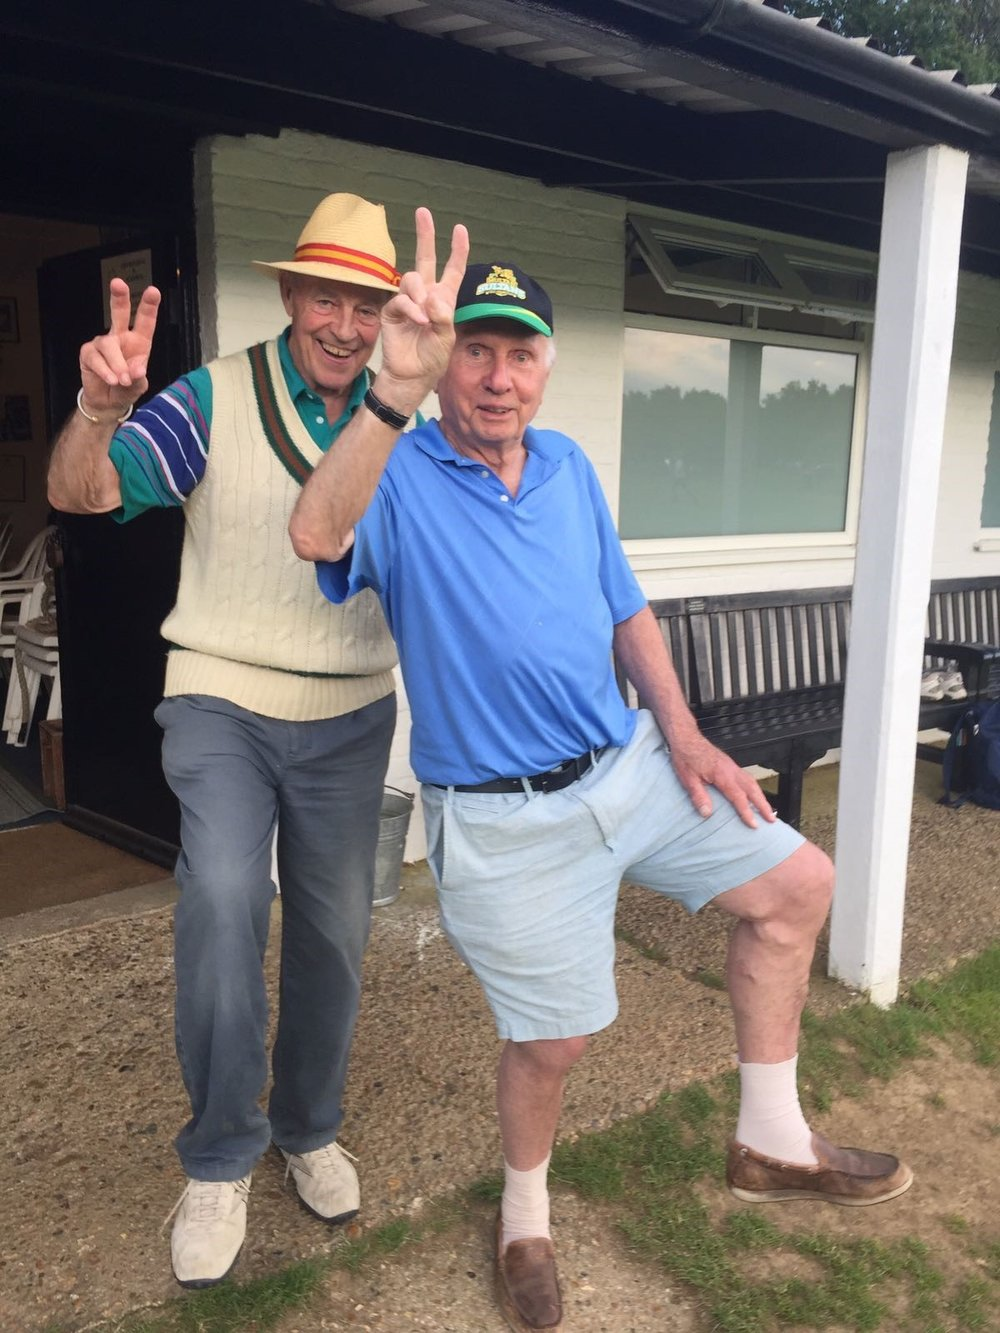 LBW Score - LP 3- Jim 2 (against Peckers) no-one could accuse our umpires of being partisan